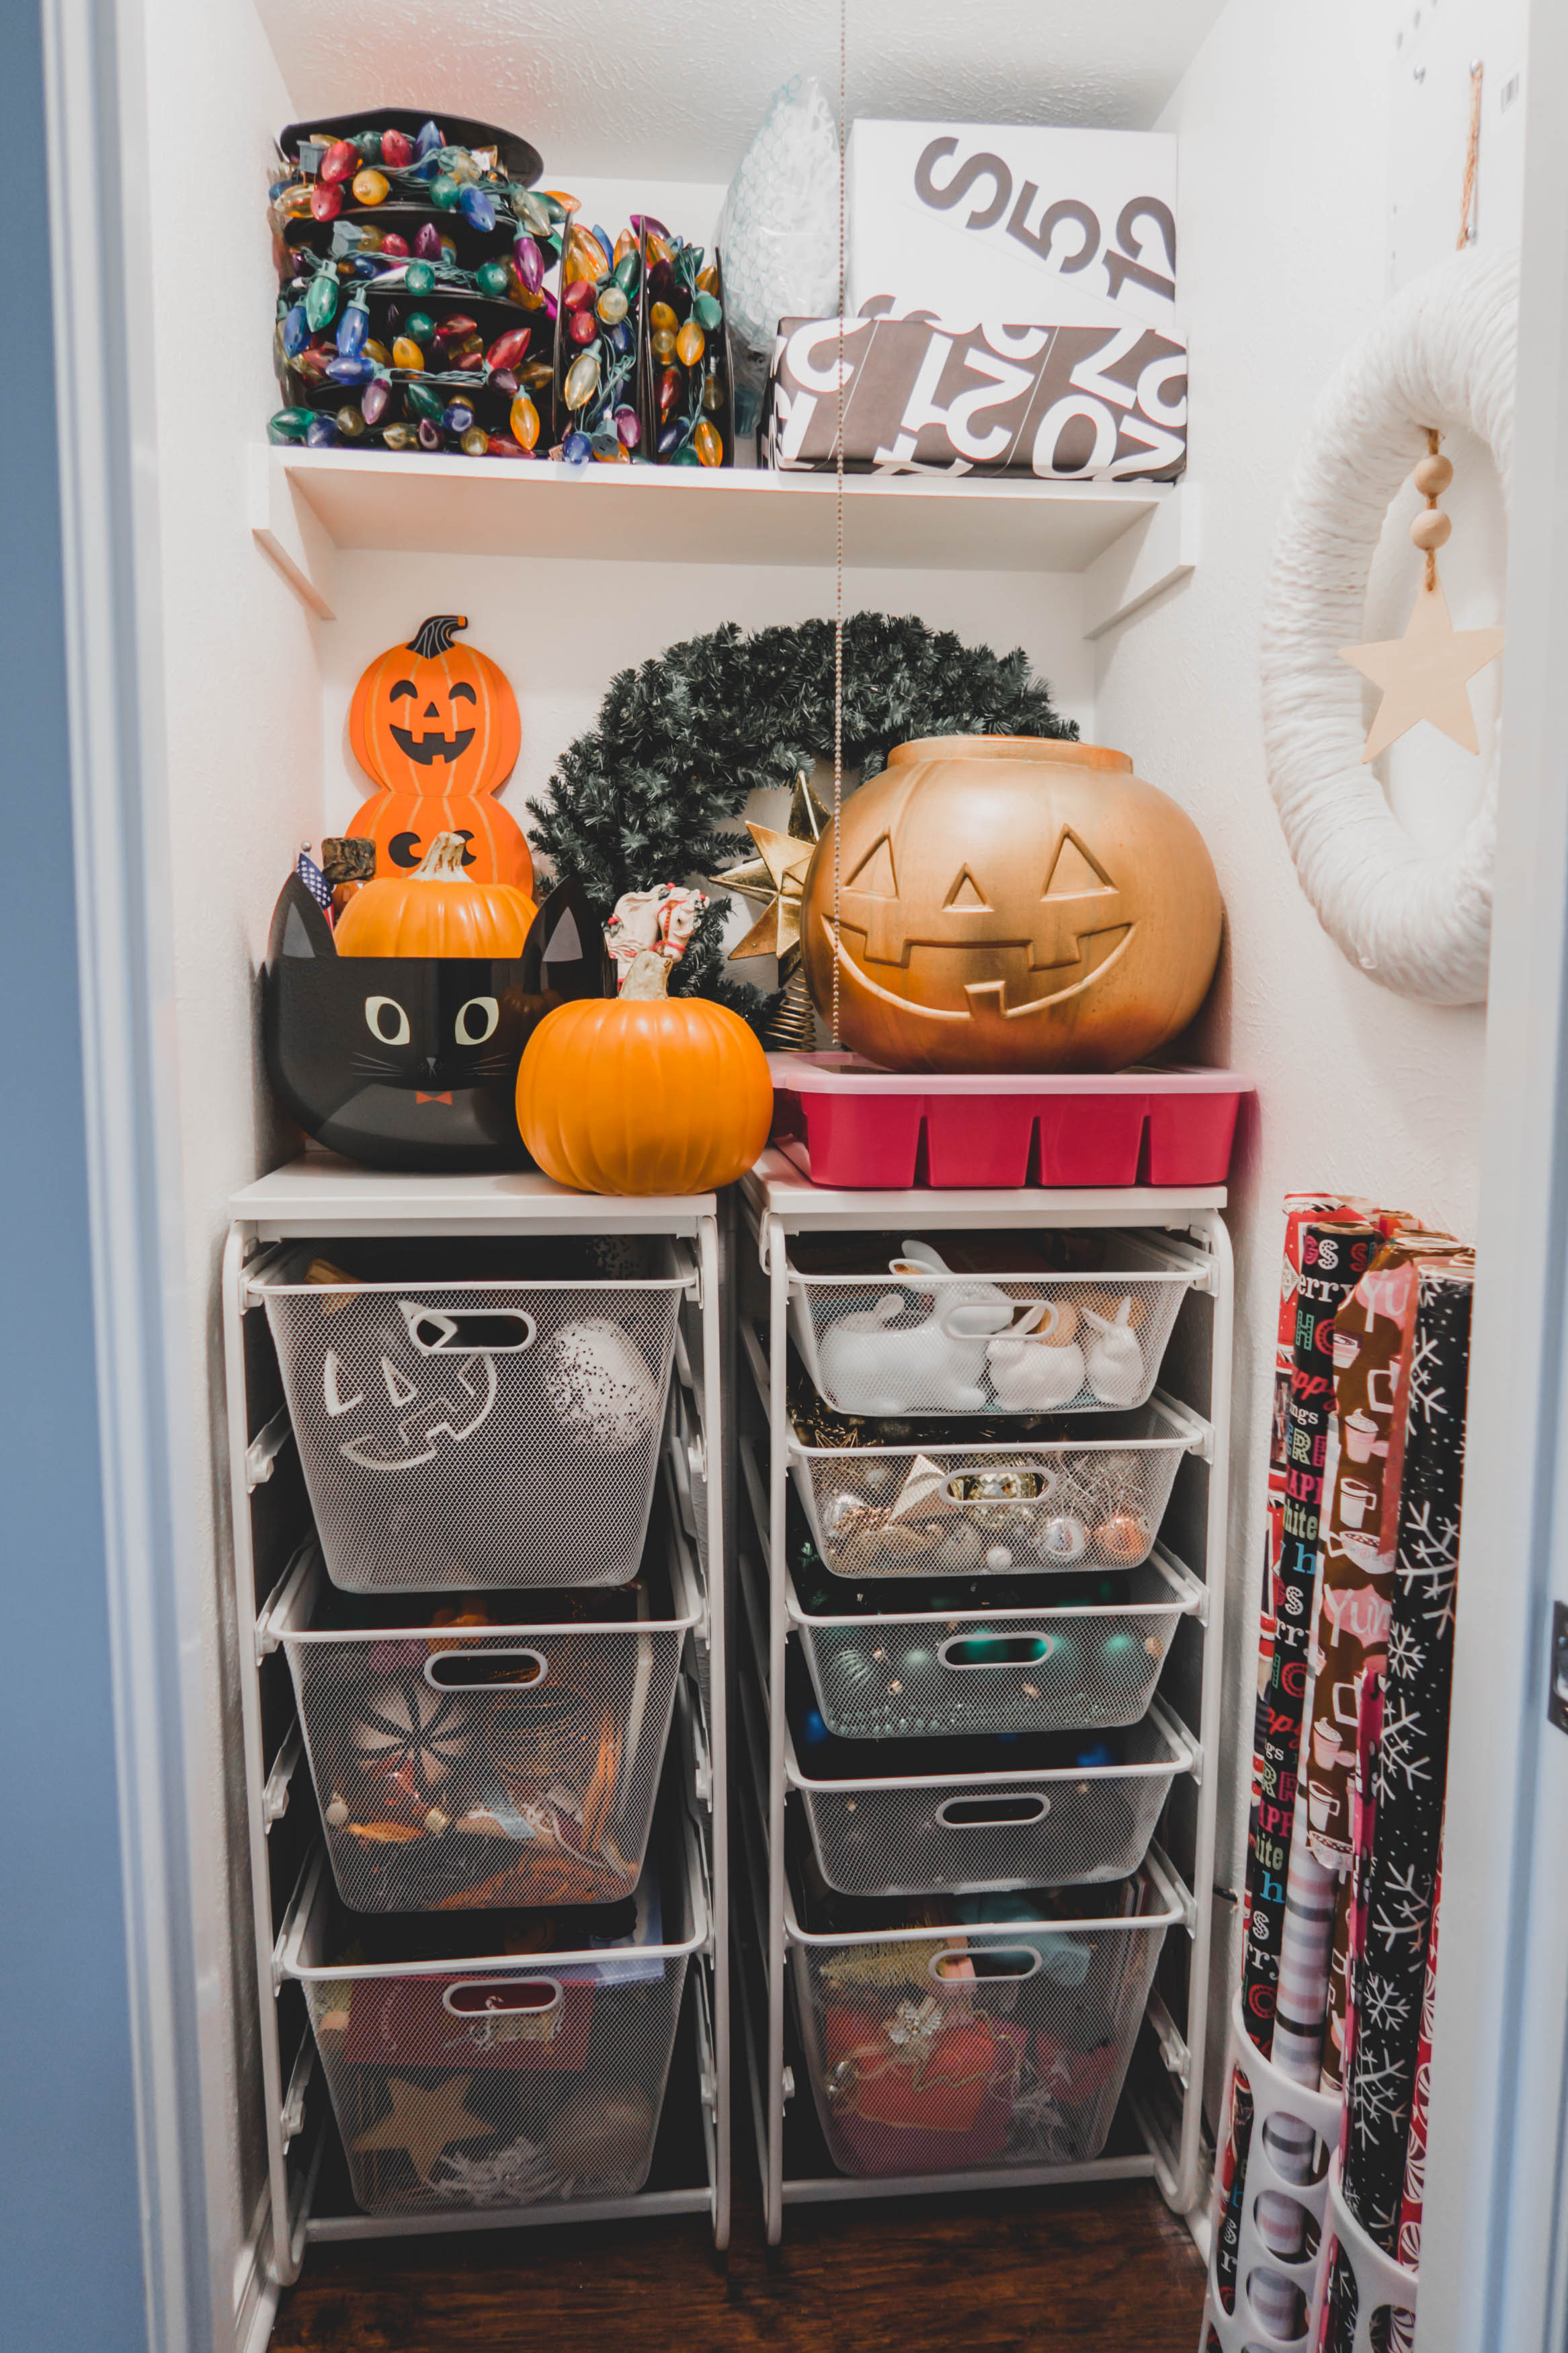 ikea-holiday-closet=storage-1.jpg